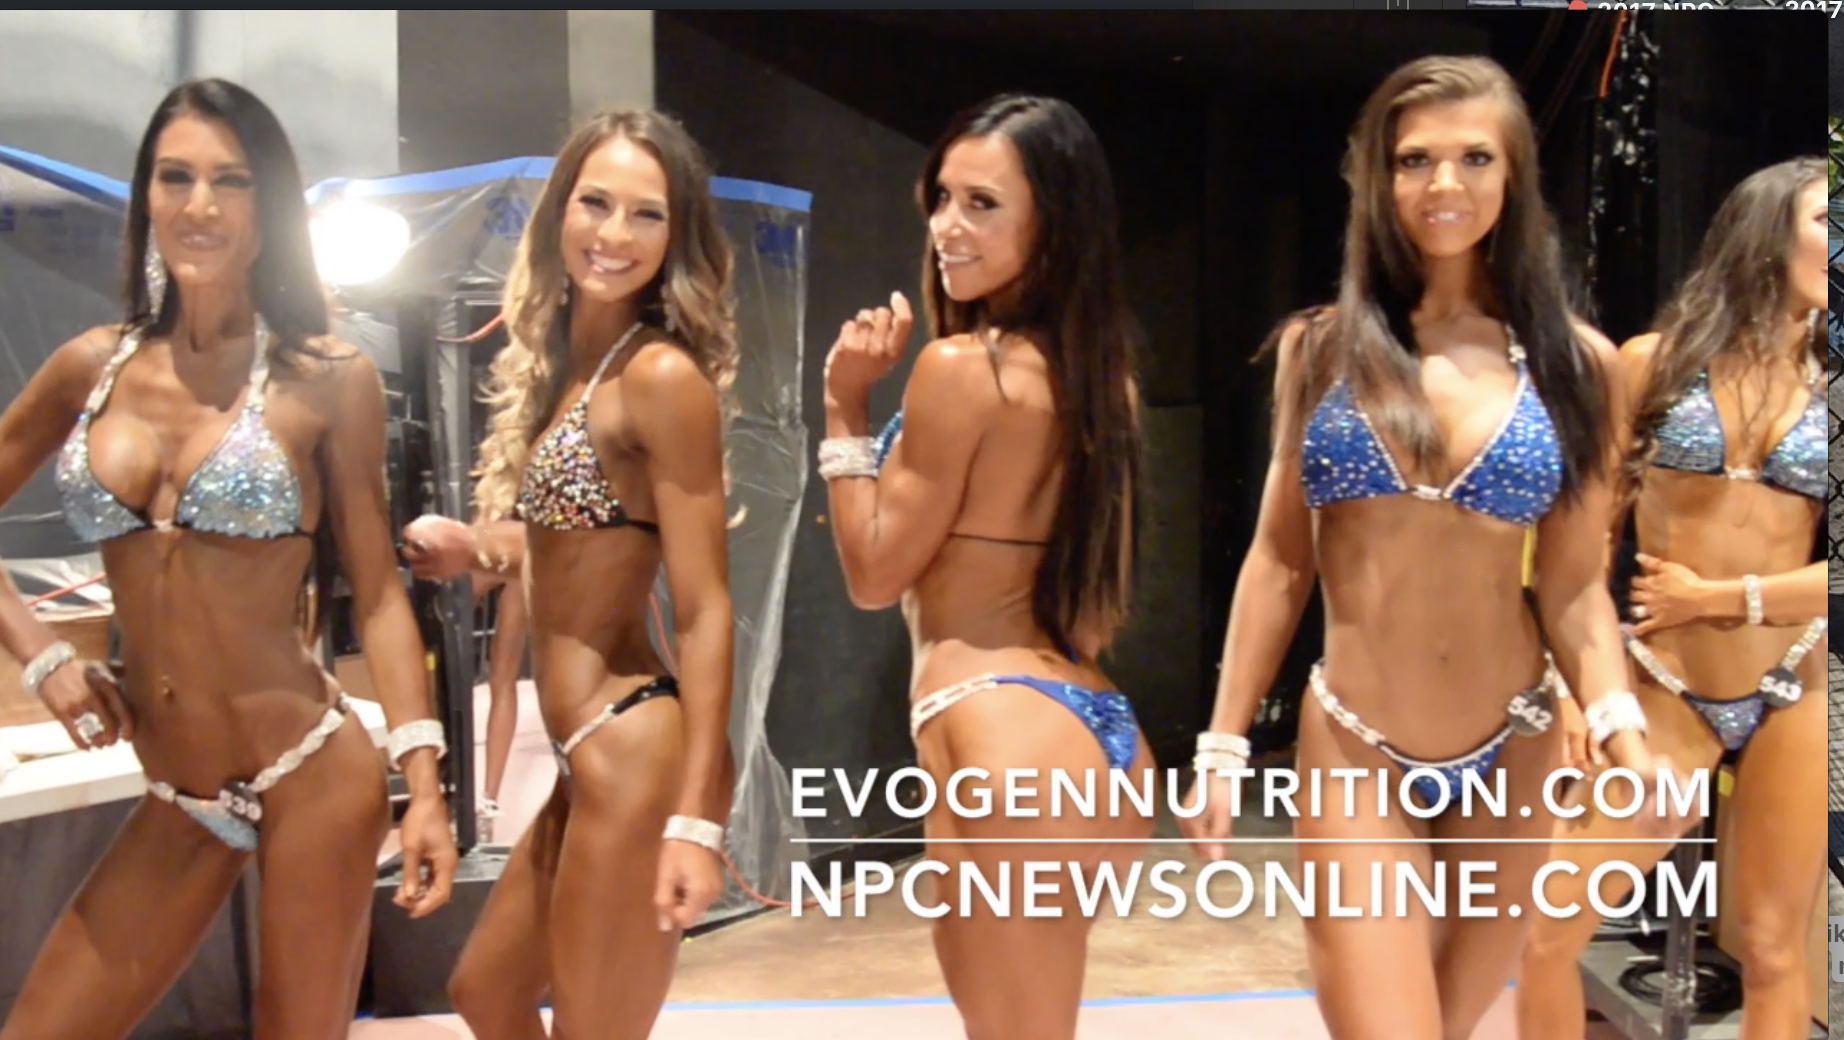 2017 NPC National Bodybuilding Championships: Bikini Backstage Video Part 1.